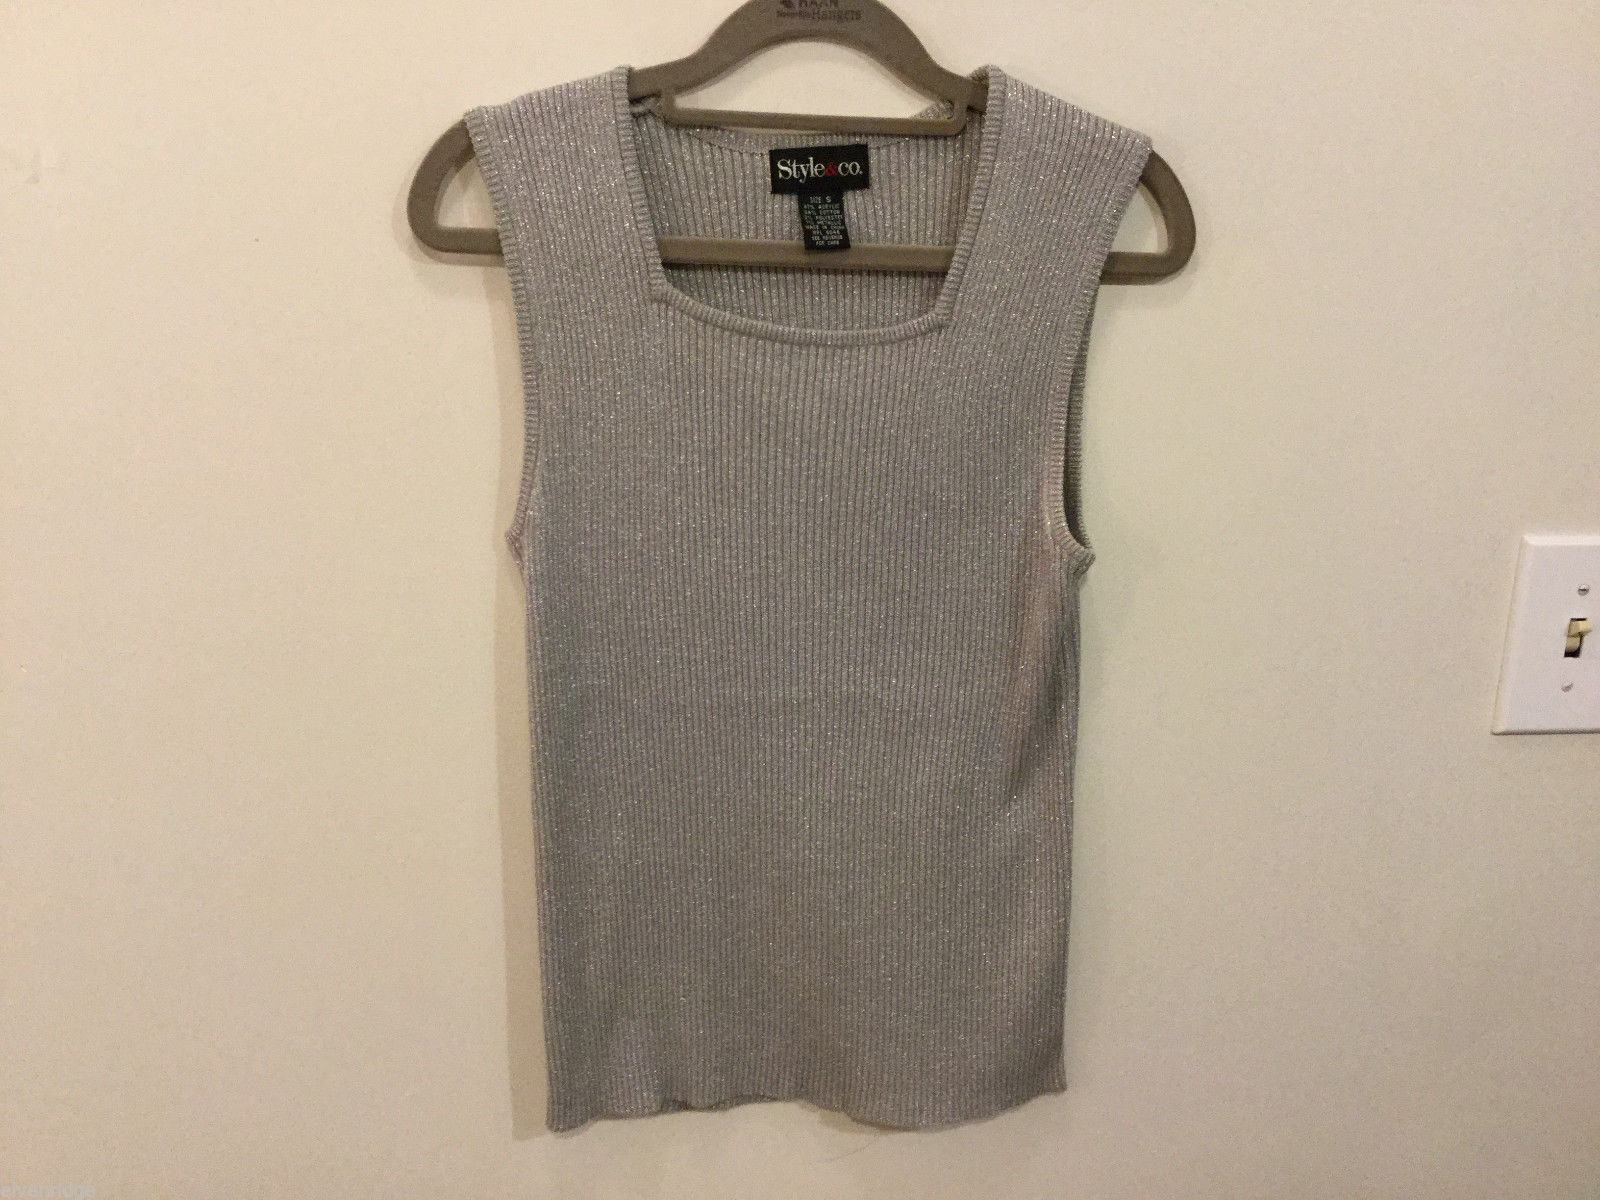 Style & Co. Silver Metallic Square neck Sleeveless Blouse Tank Top, Size S